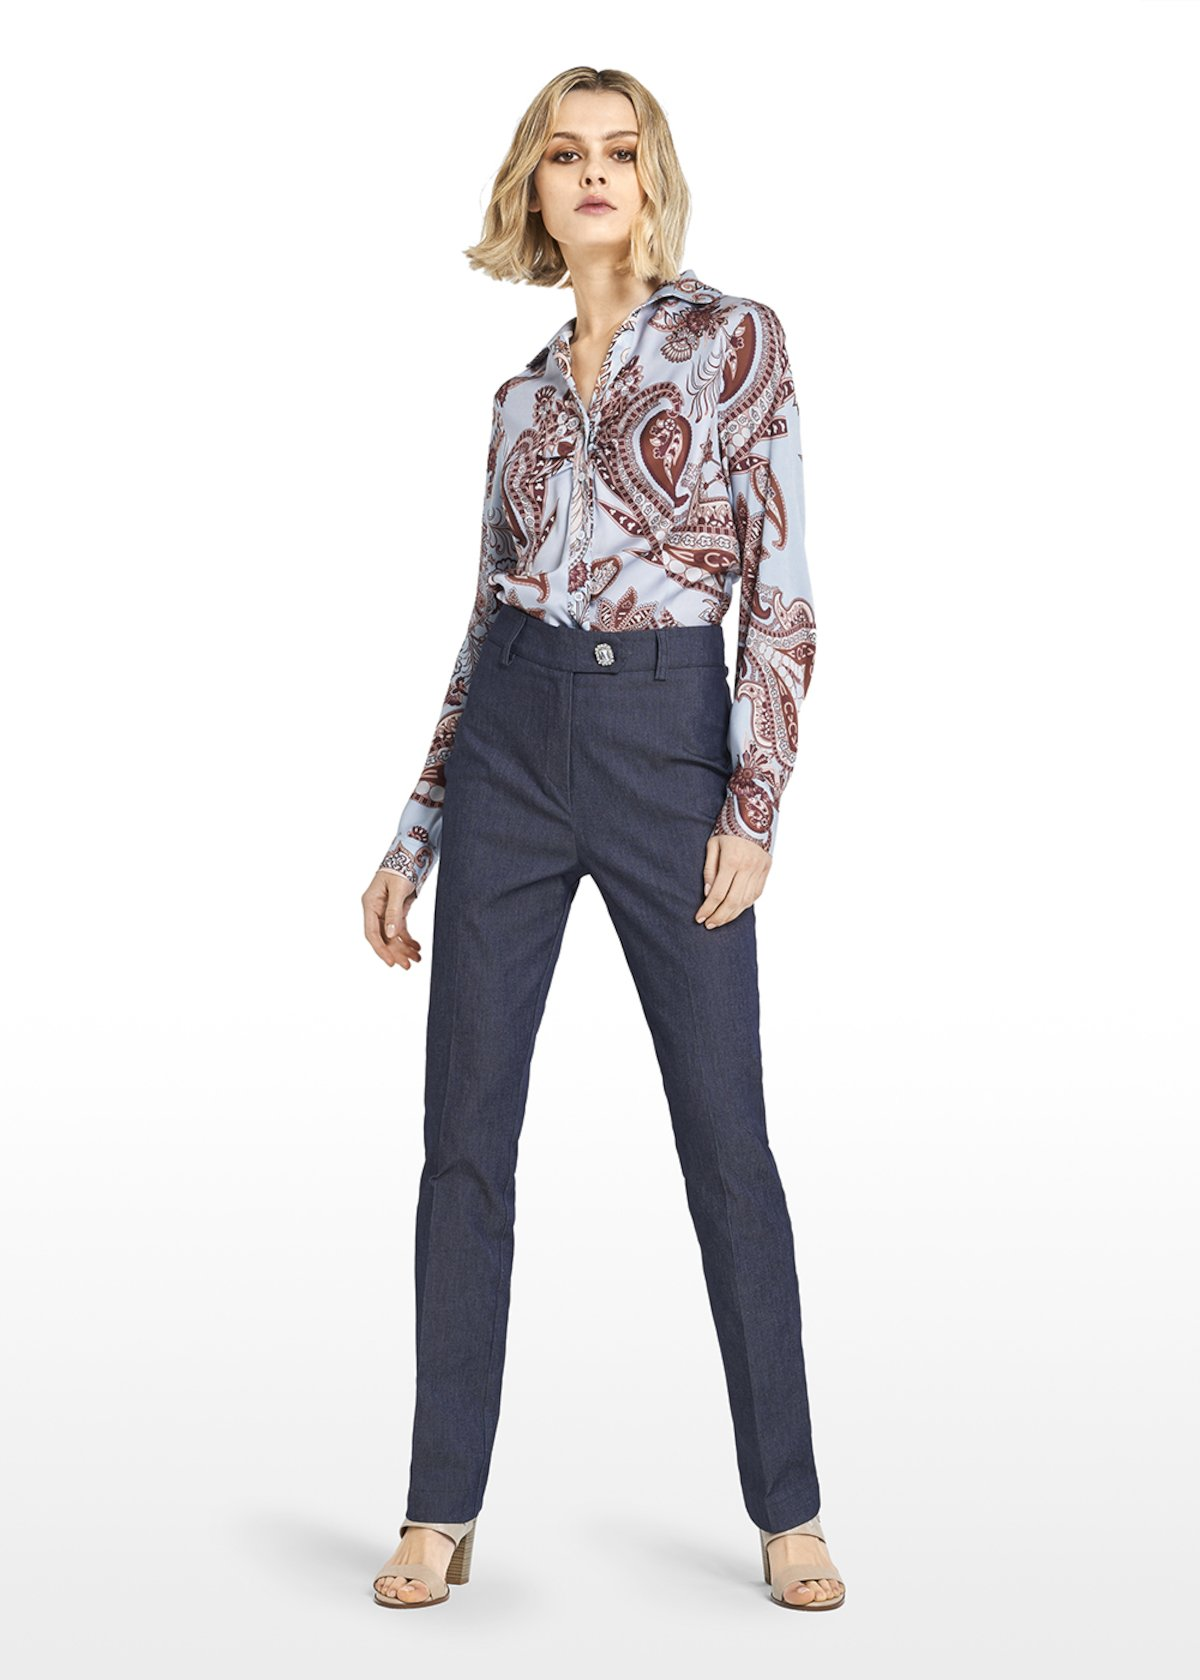 Charlize shirt jasmine pattern with collar - Sky / Tobacco Fantasia - Woman